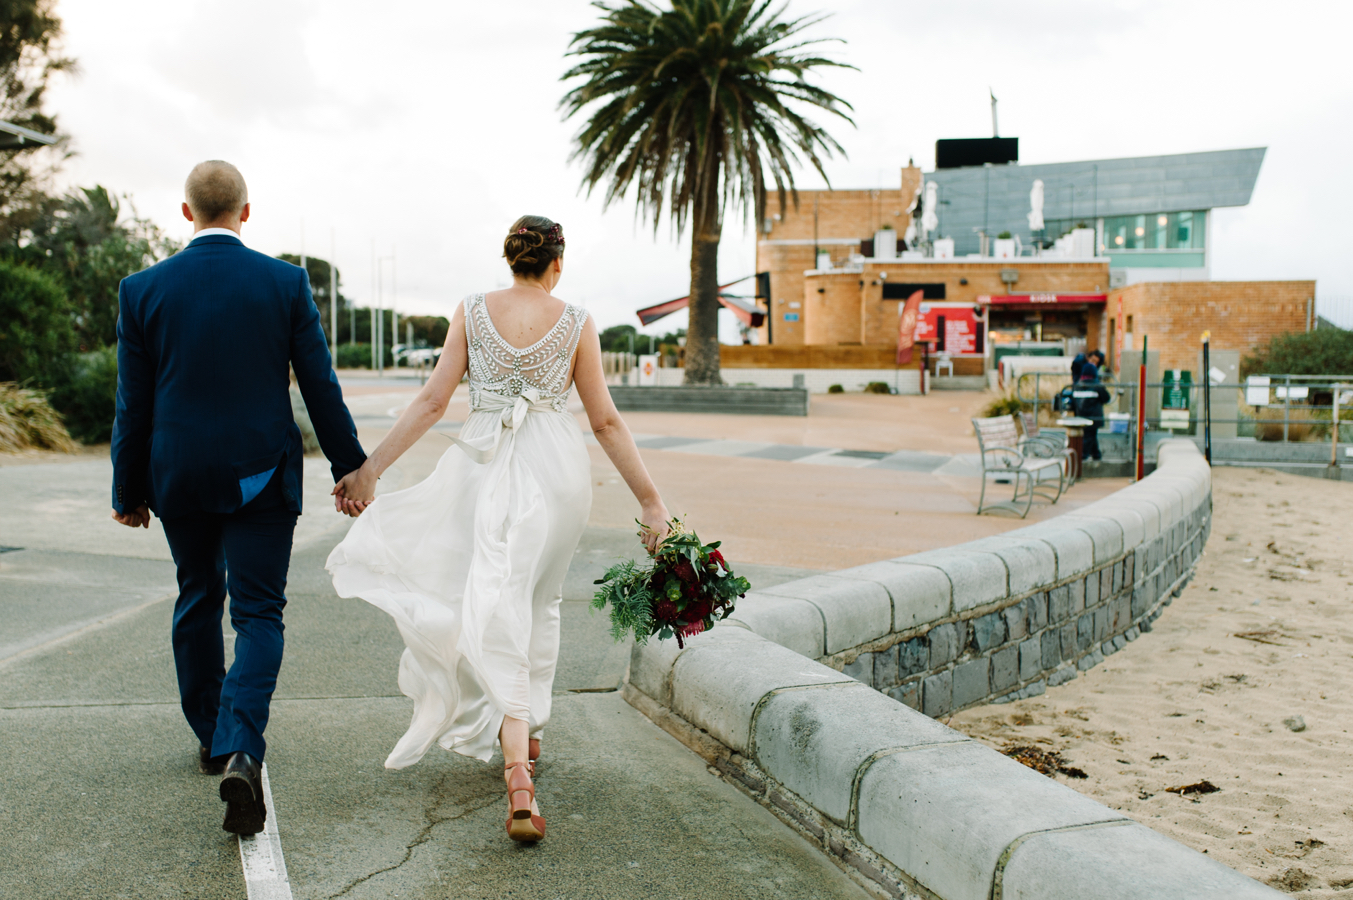 Melbourne wedding photography by Michelle Pragt